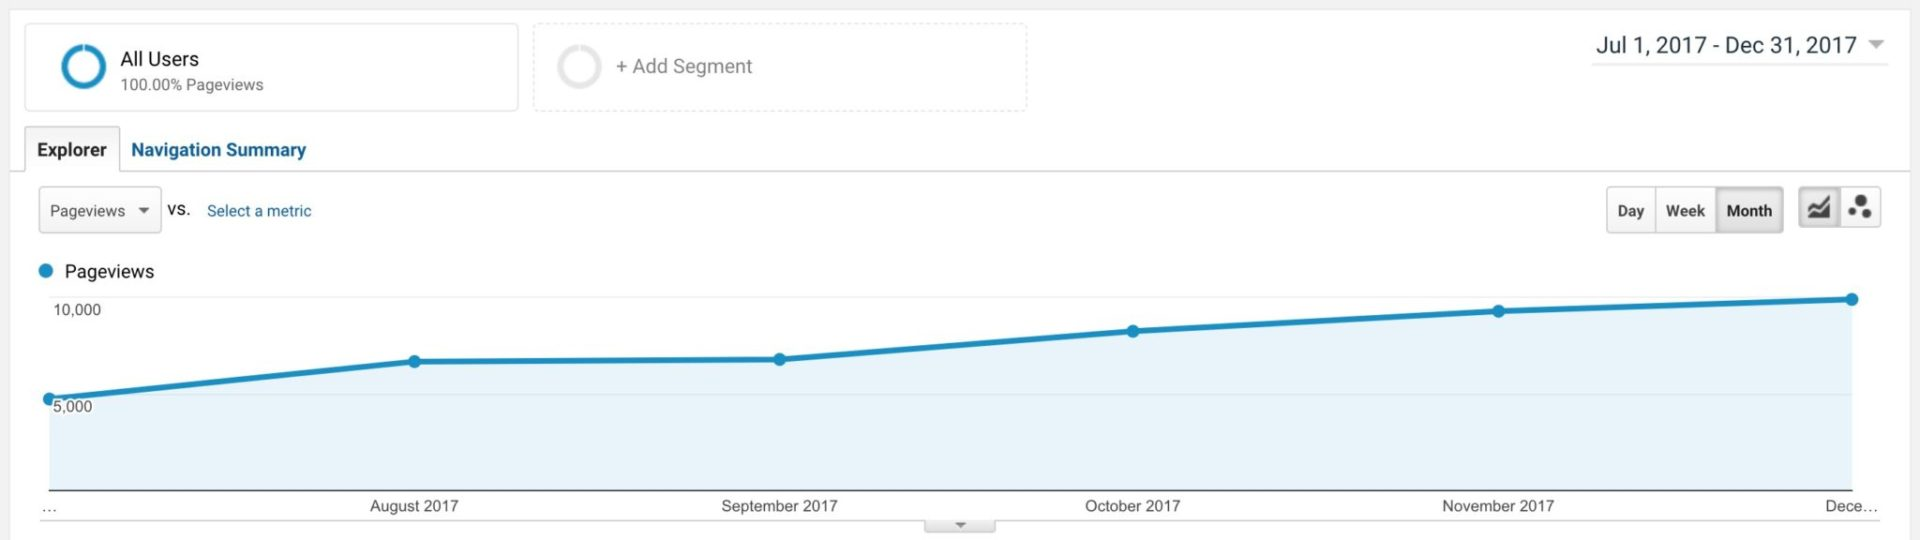 Catapult Themes page views